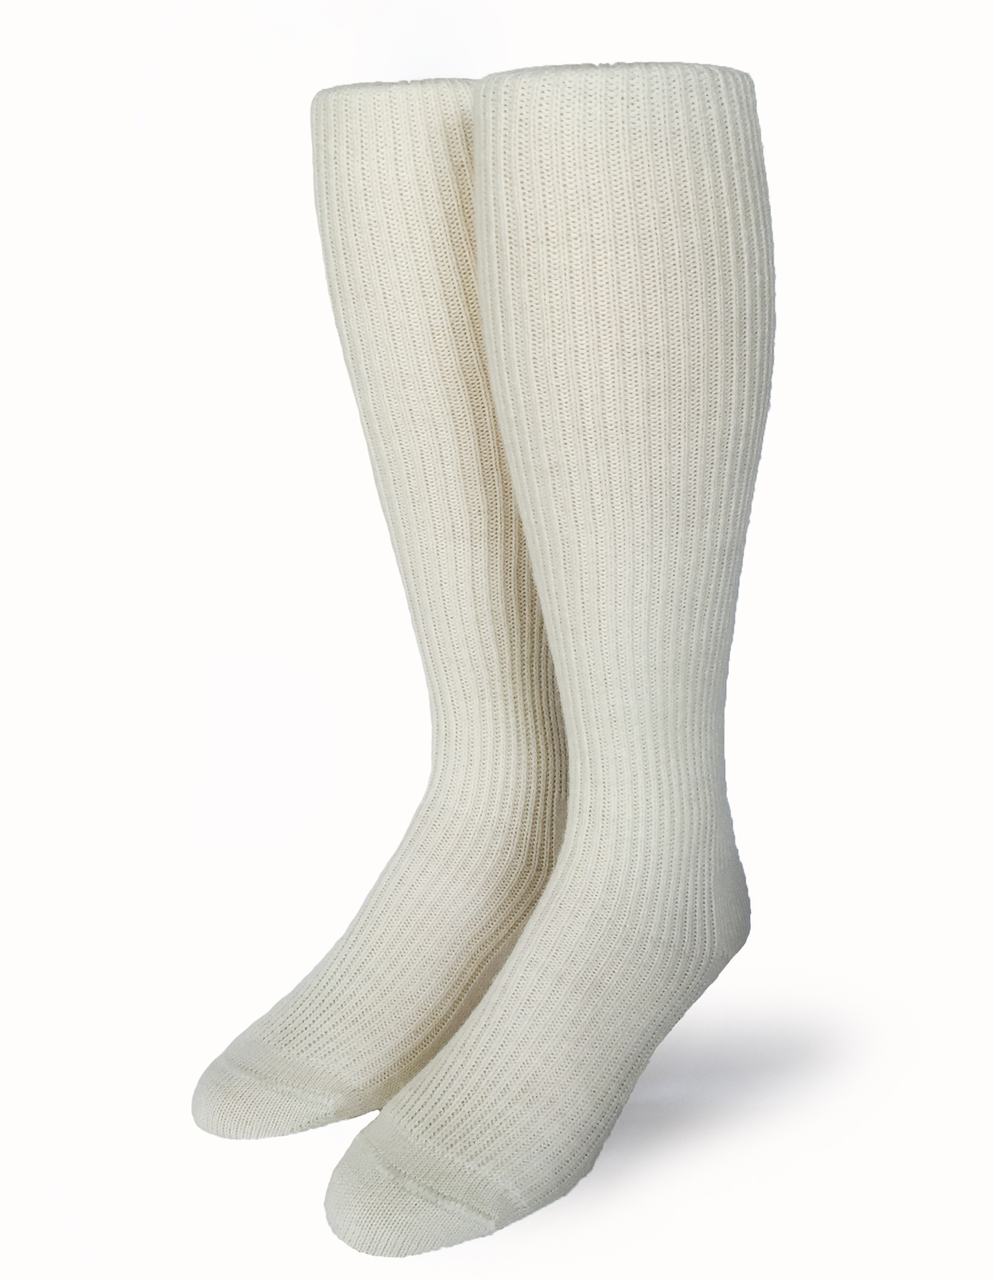 3d5dd3e7d Old Fashioned Tender Tube Socks for Men and Women - Baby Alpaca Wool ...